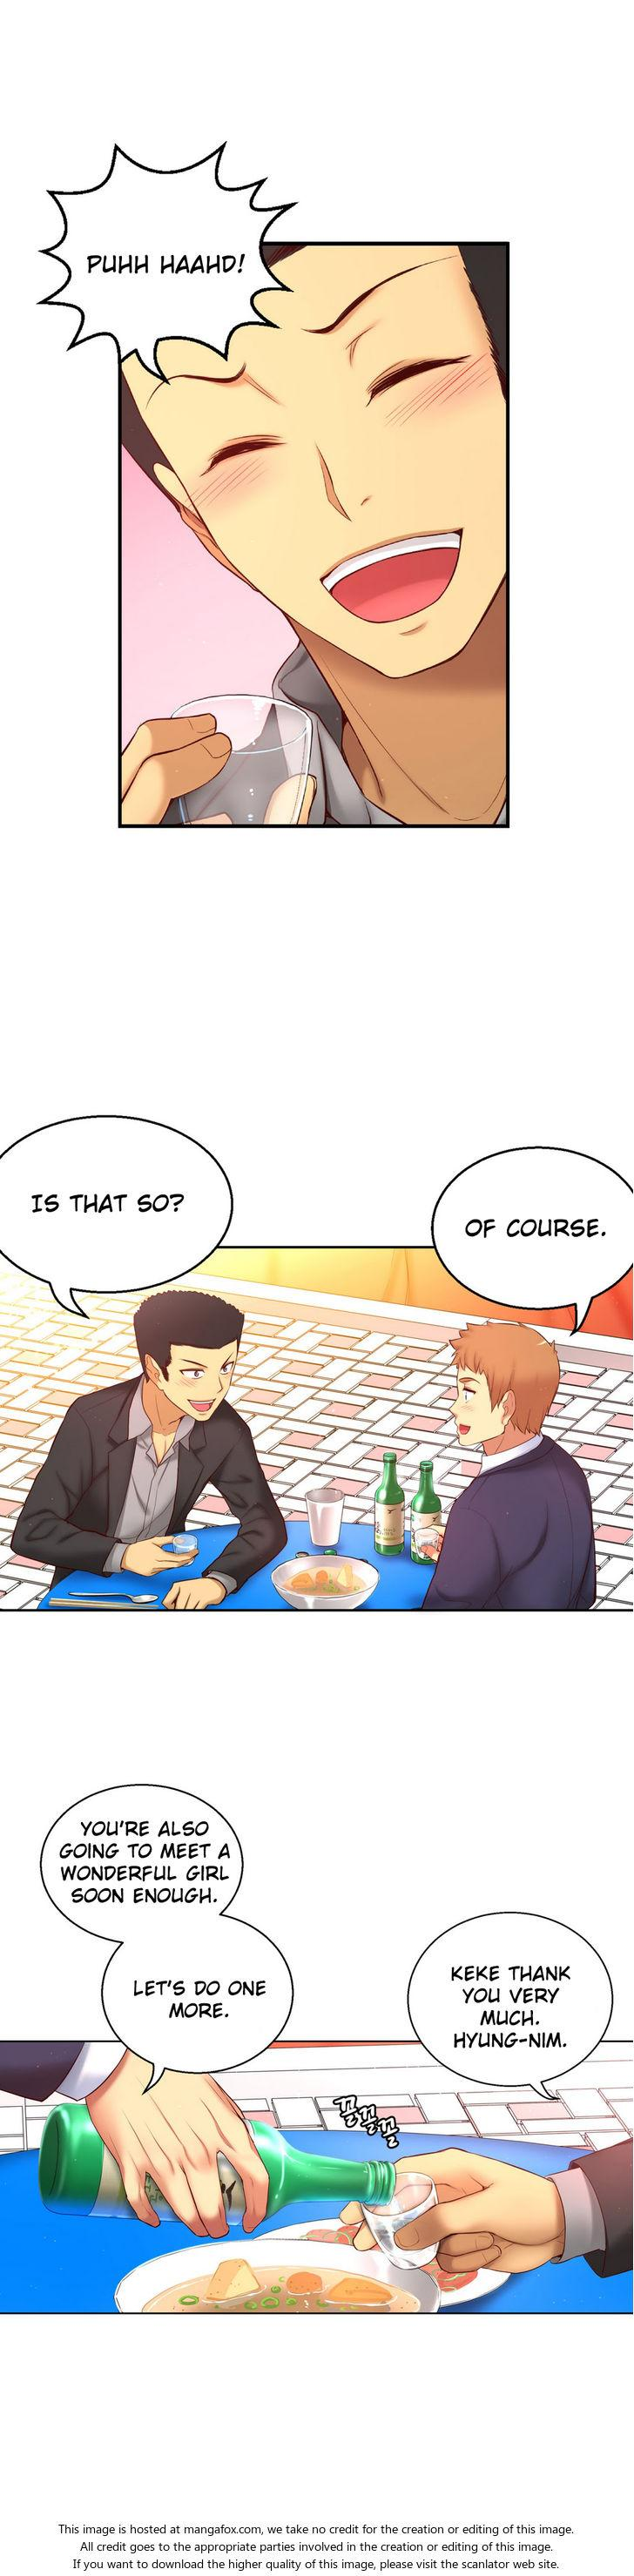 [Donggul Gom] She is Young (English) Part 1/2 1821